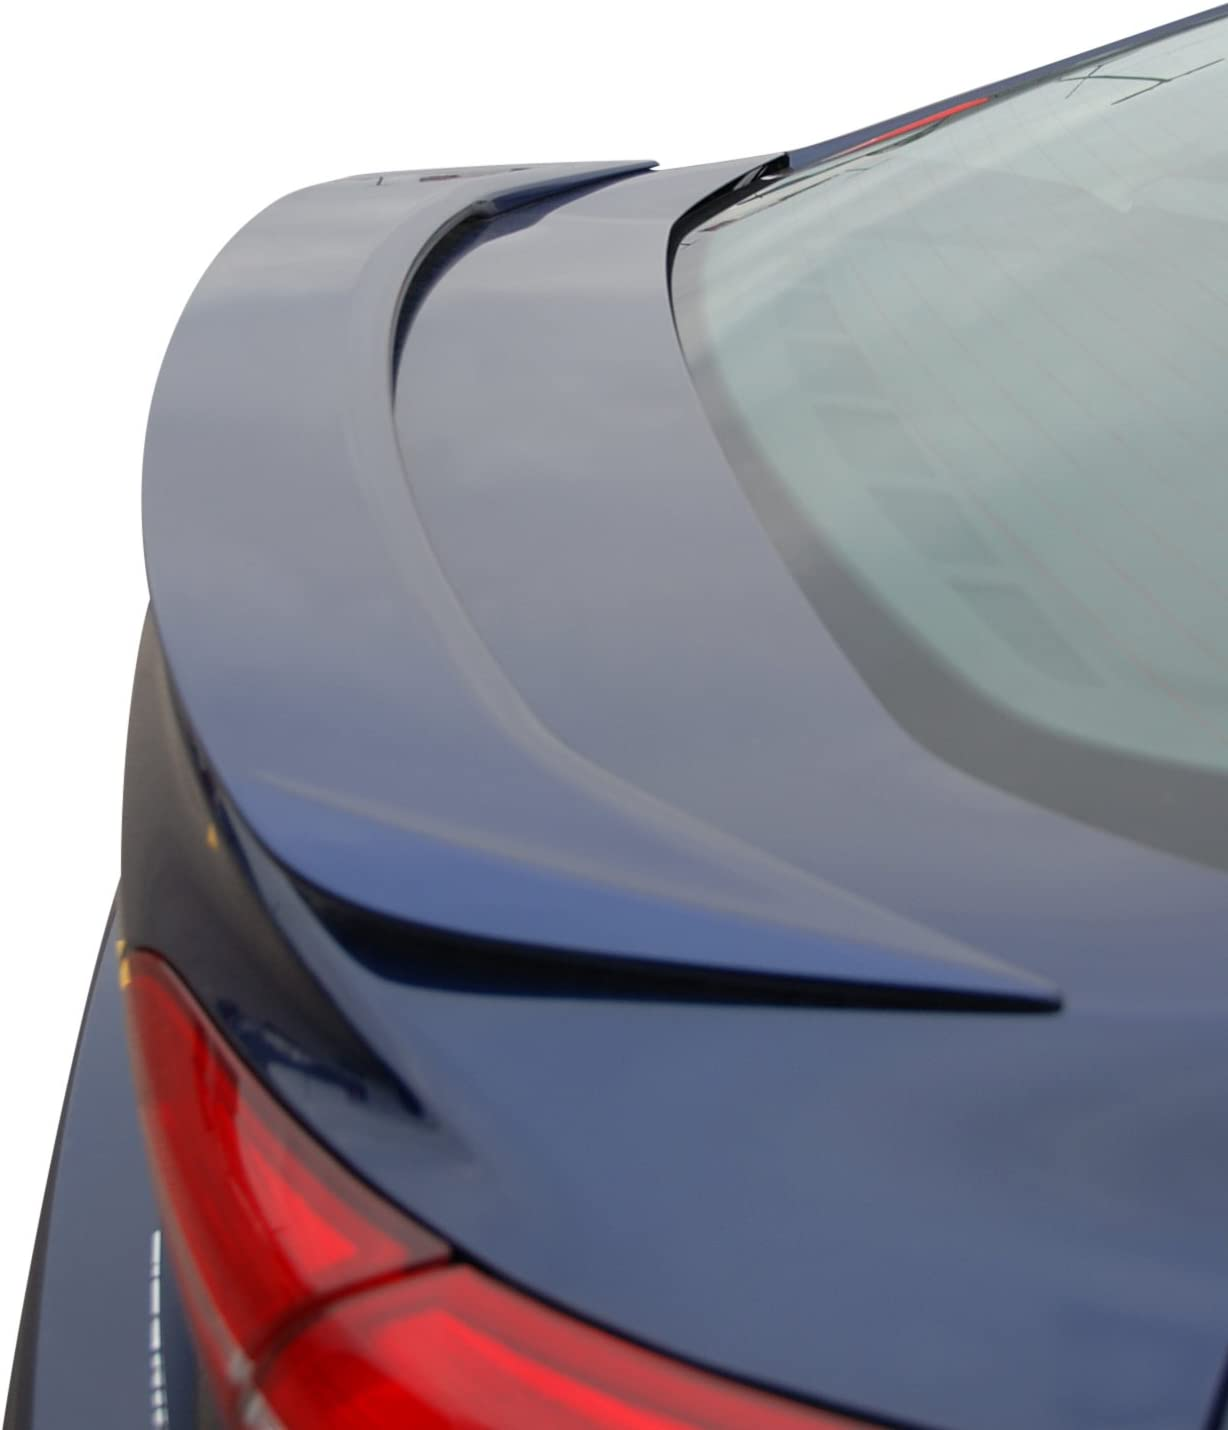 Factory Style GT Spoiler for the Ford Mustang Painted in the Factory Paint Code of Your Choice 548 G1